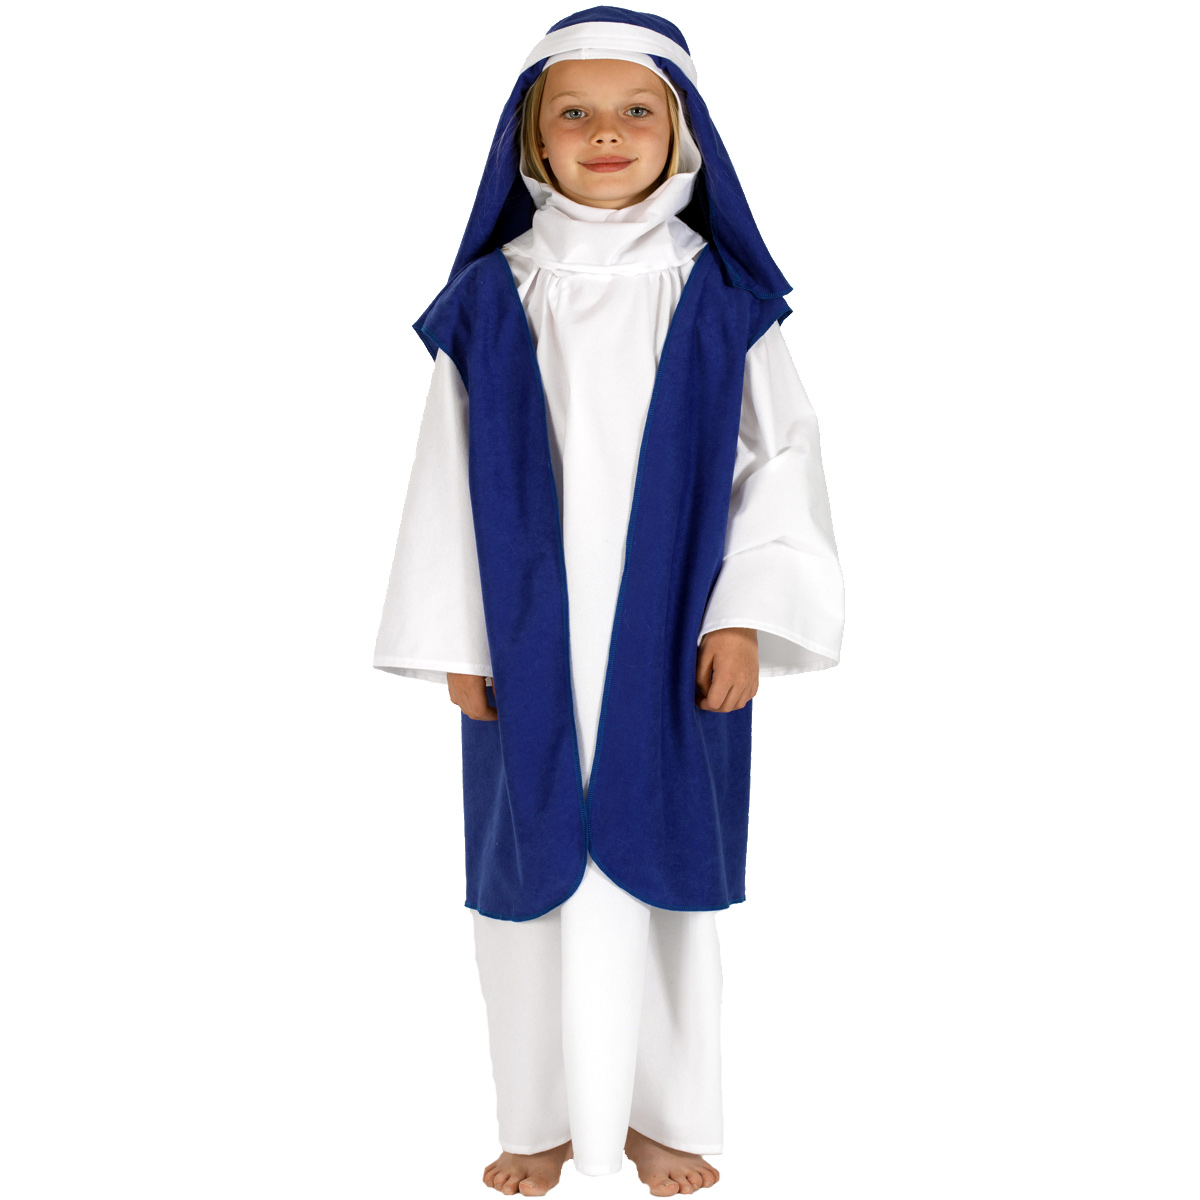 Childrens Nativity Costumes Nativity Costumes For